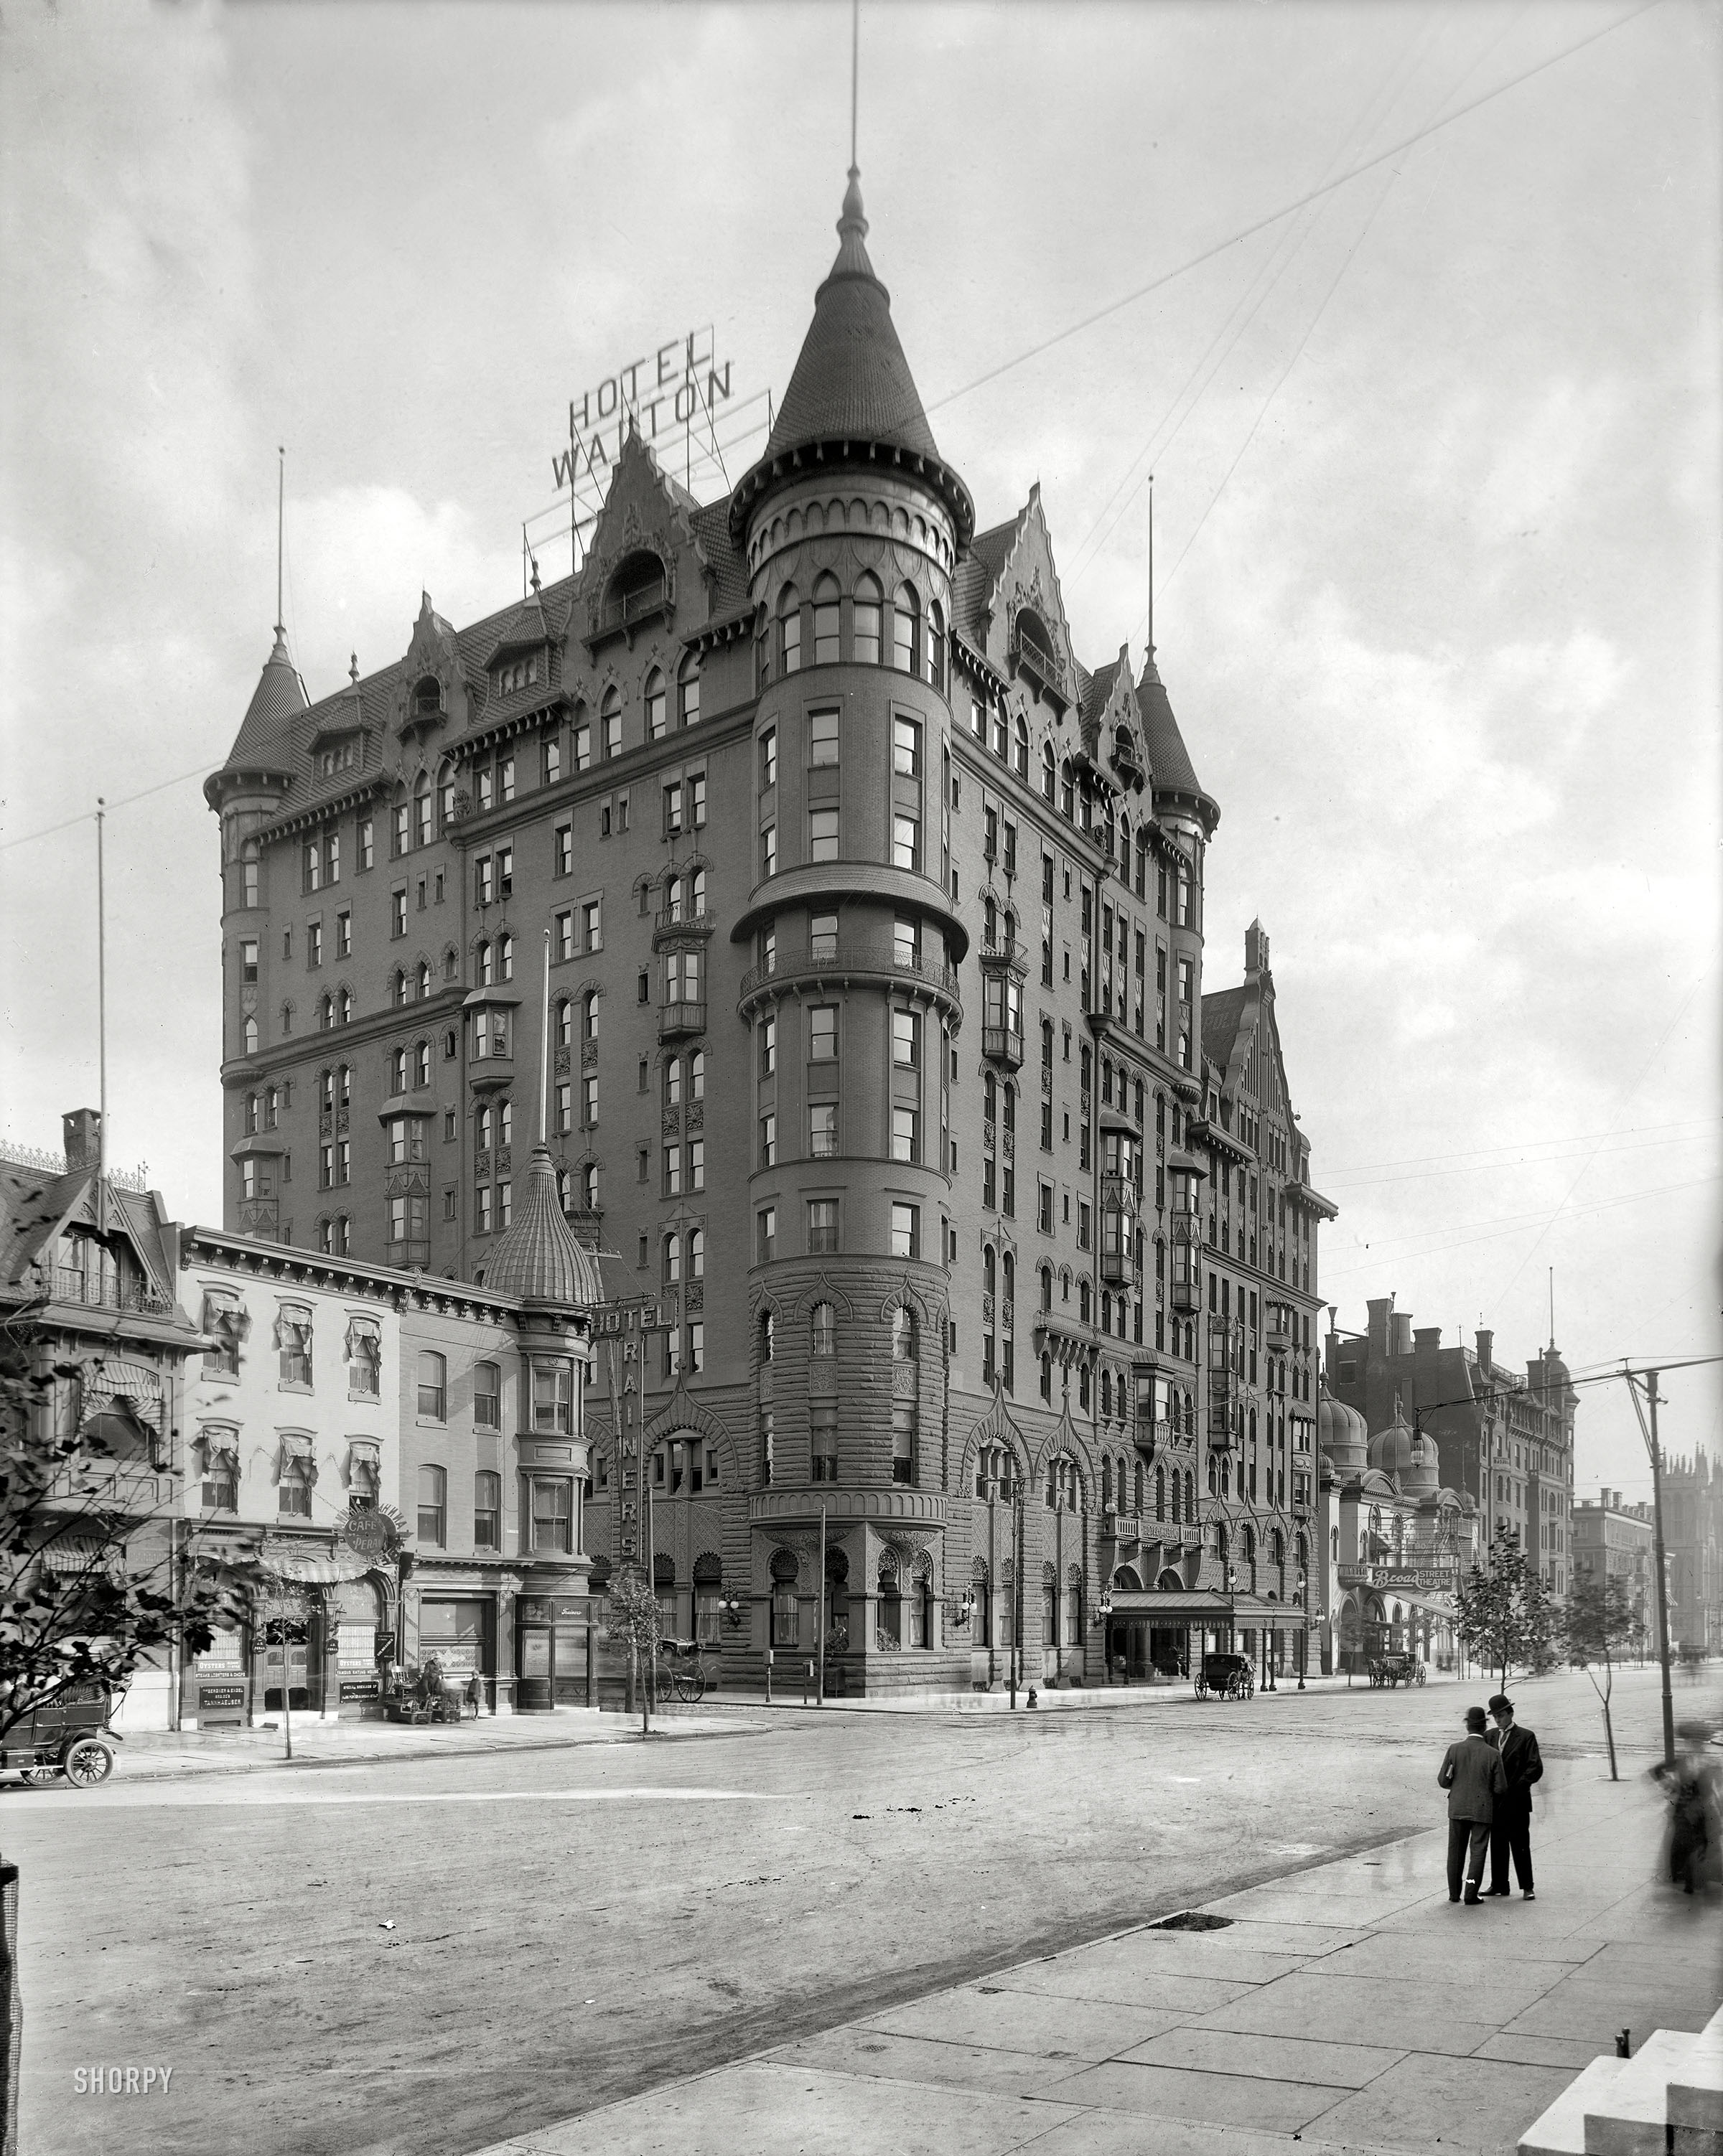 Shorpy Historic Picture Archive Hotel Walton 1908 High Resolution Photo